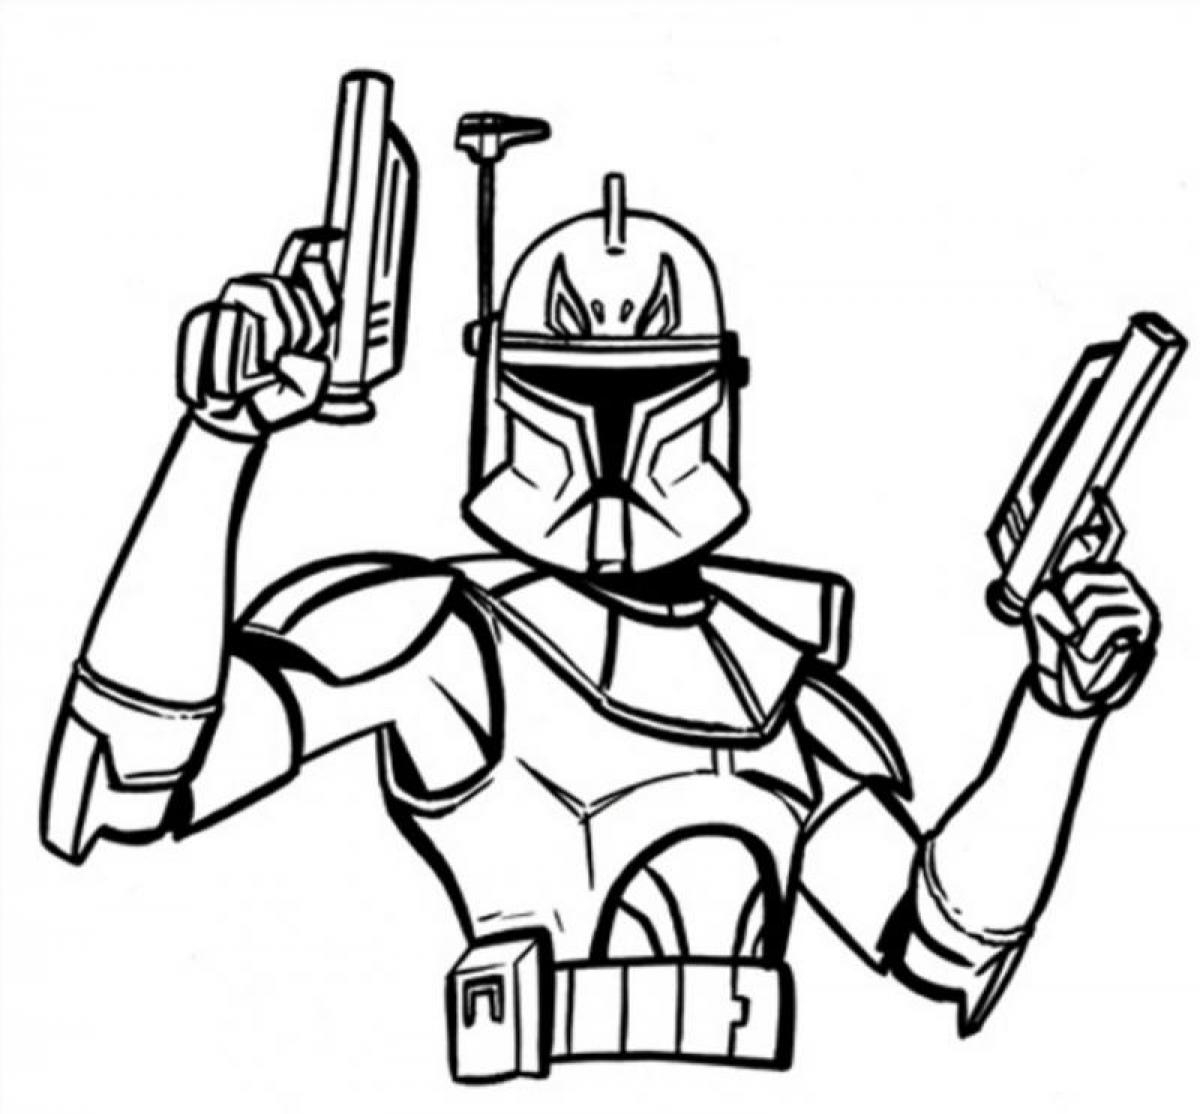 6 Star Wars Characters Free Coloring Page Kids Movies and Pages Collection Of Polkadots On Parade Star Wars the force Awakens Coloring Pages Collection